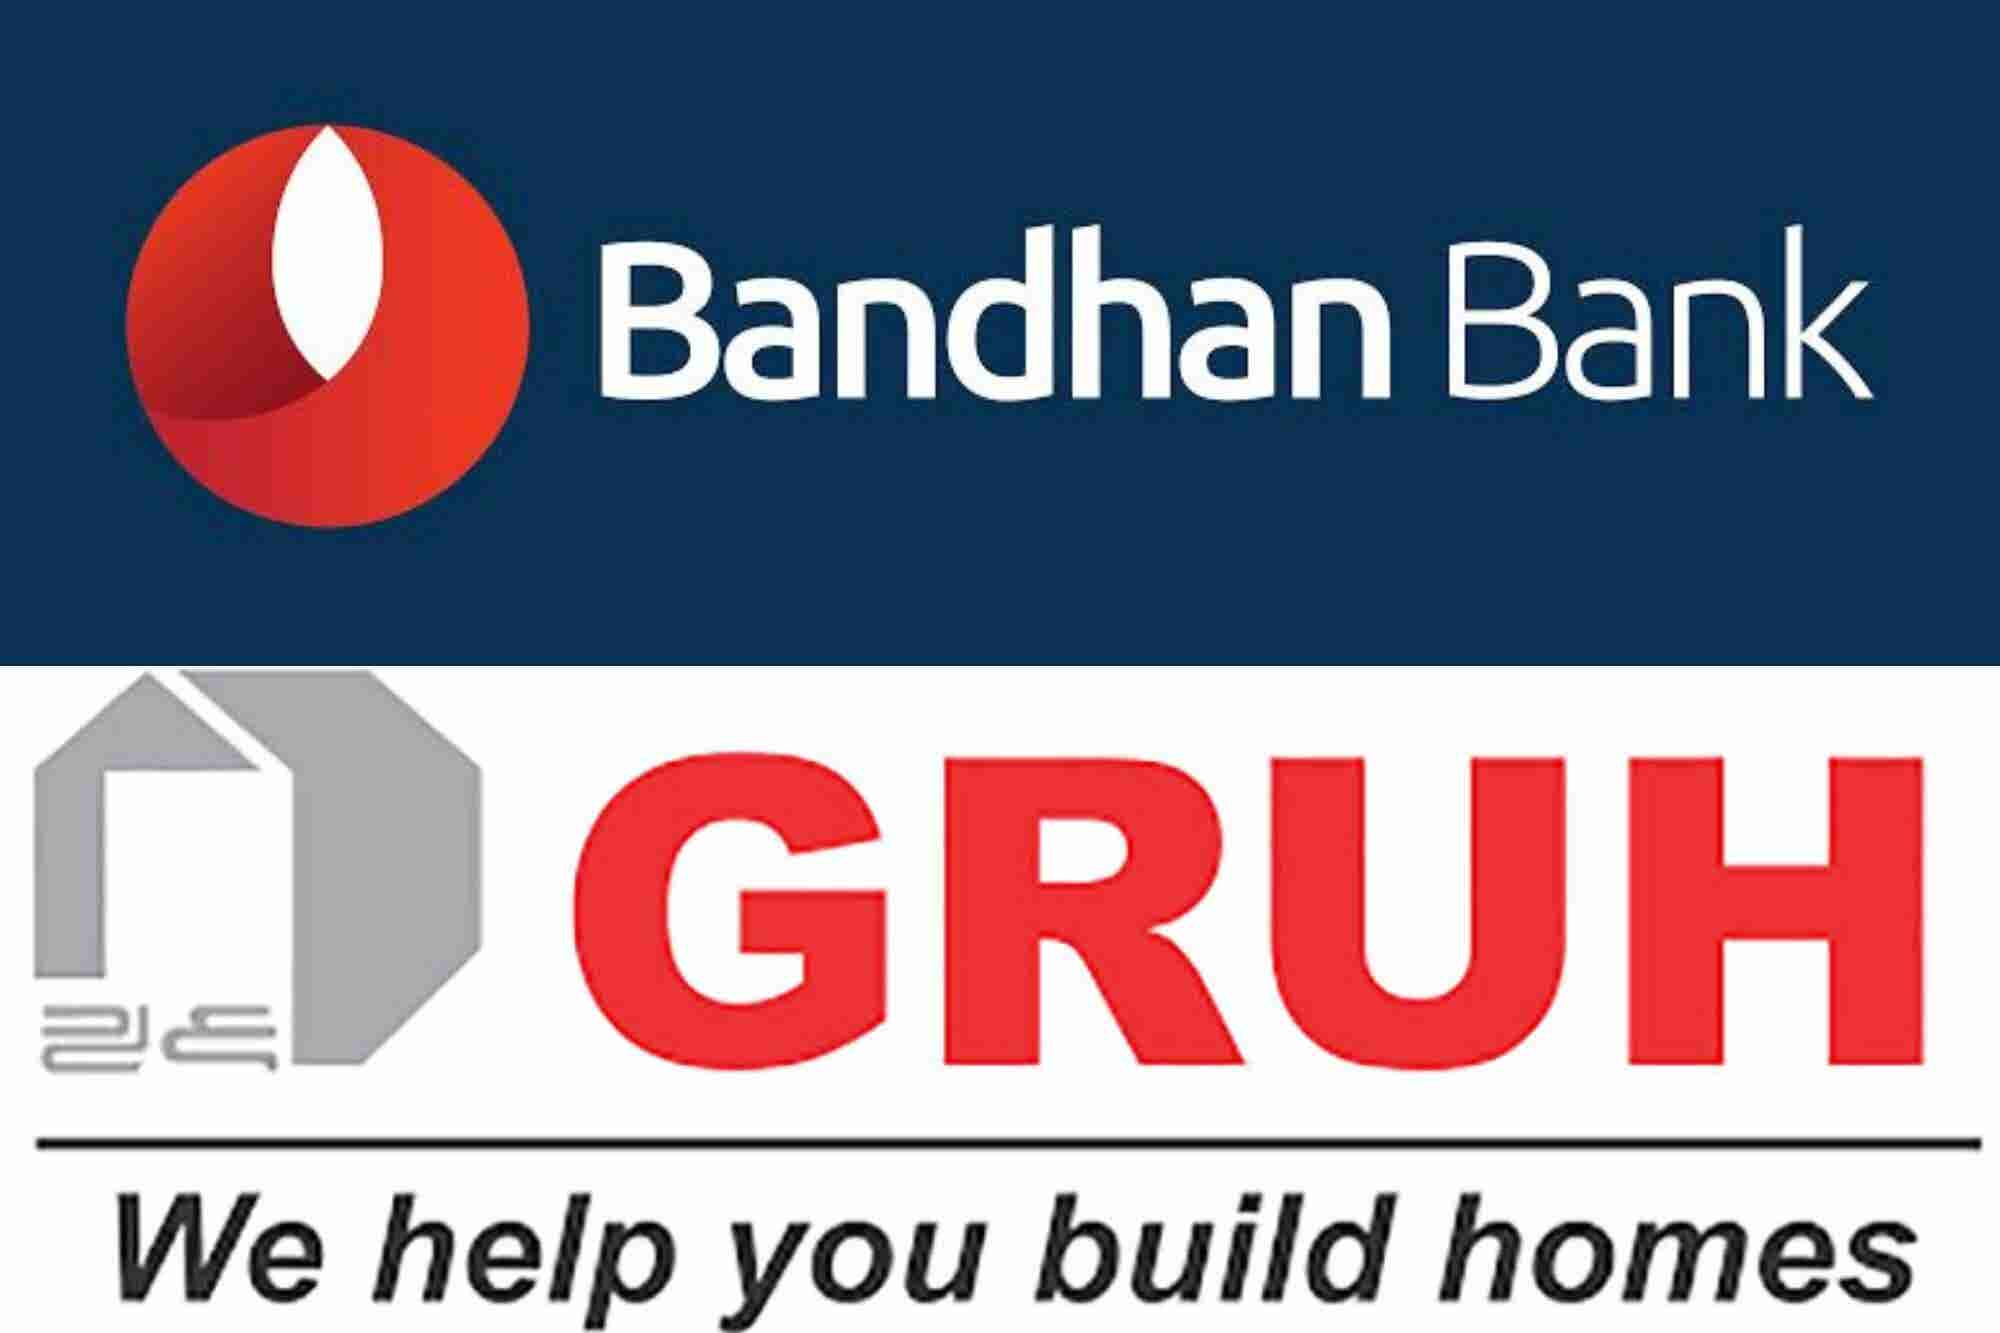 A Merger of Affordable Housing & Loans: Bandhan Bank Acquires Gruh Finance